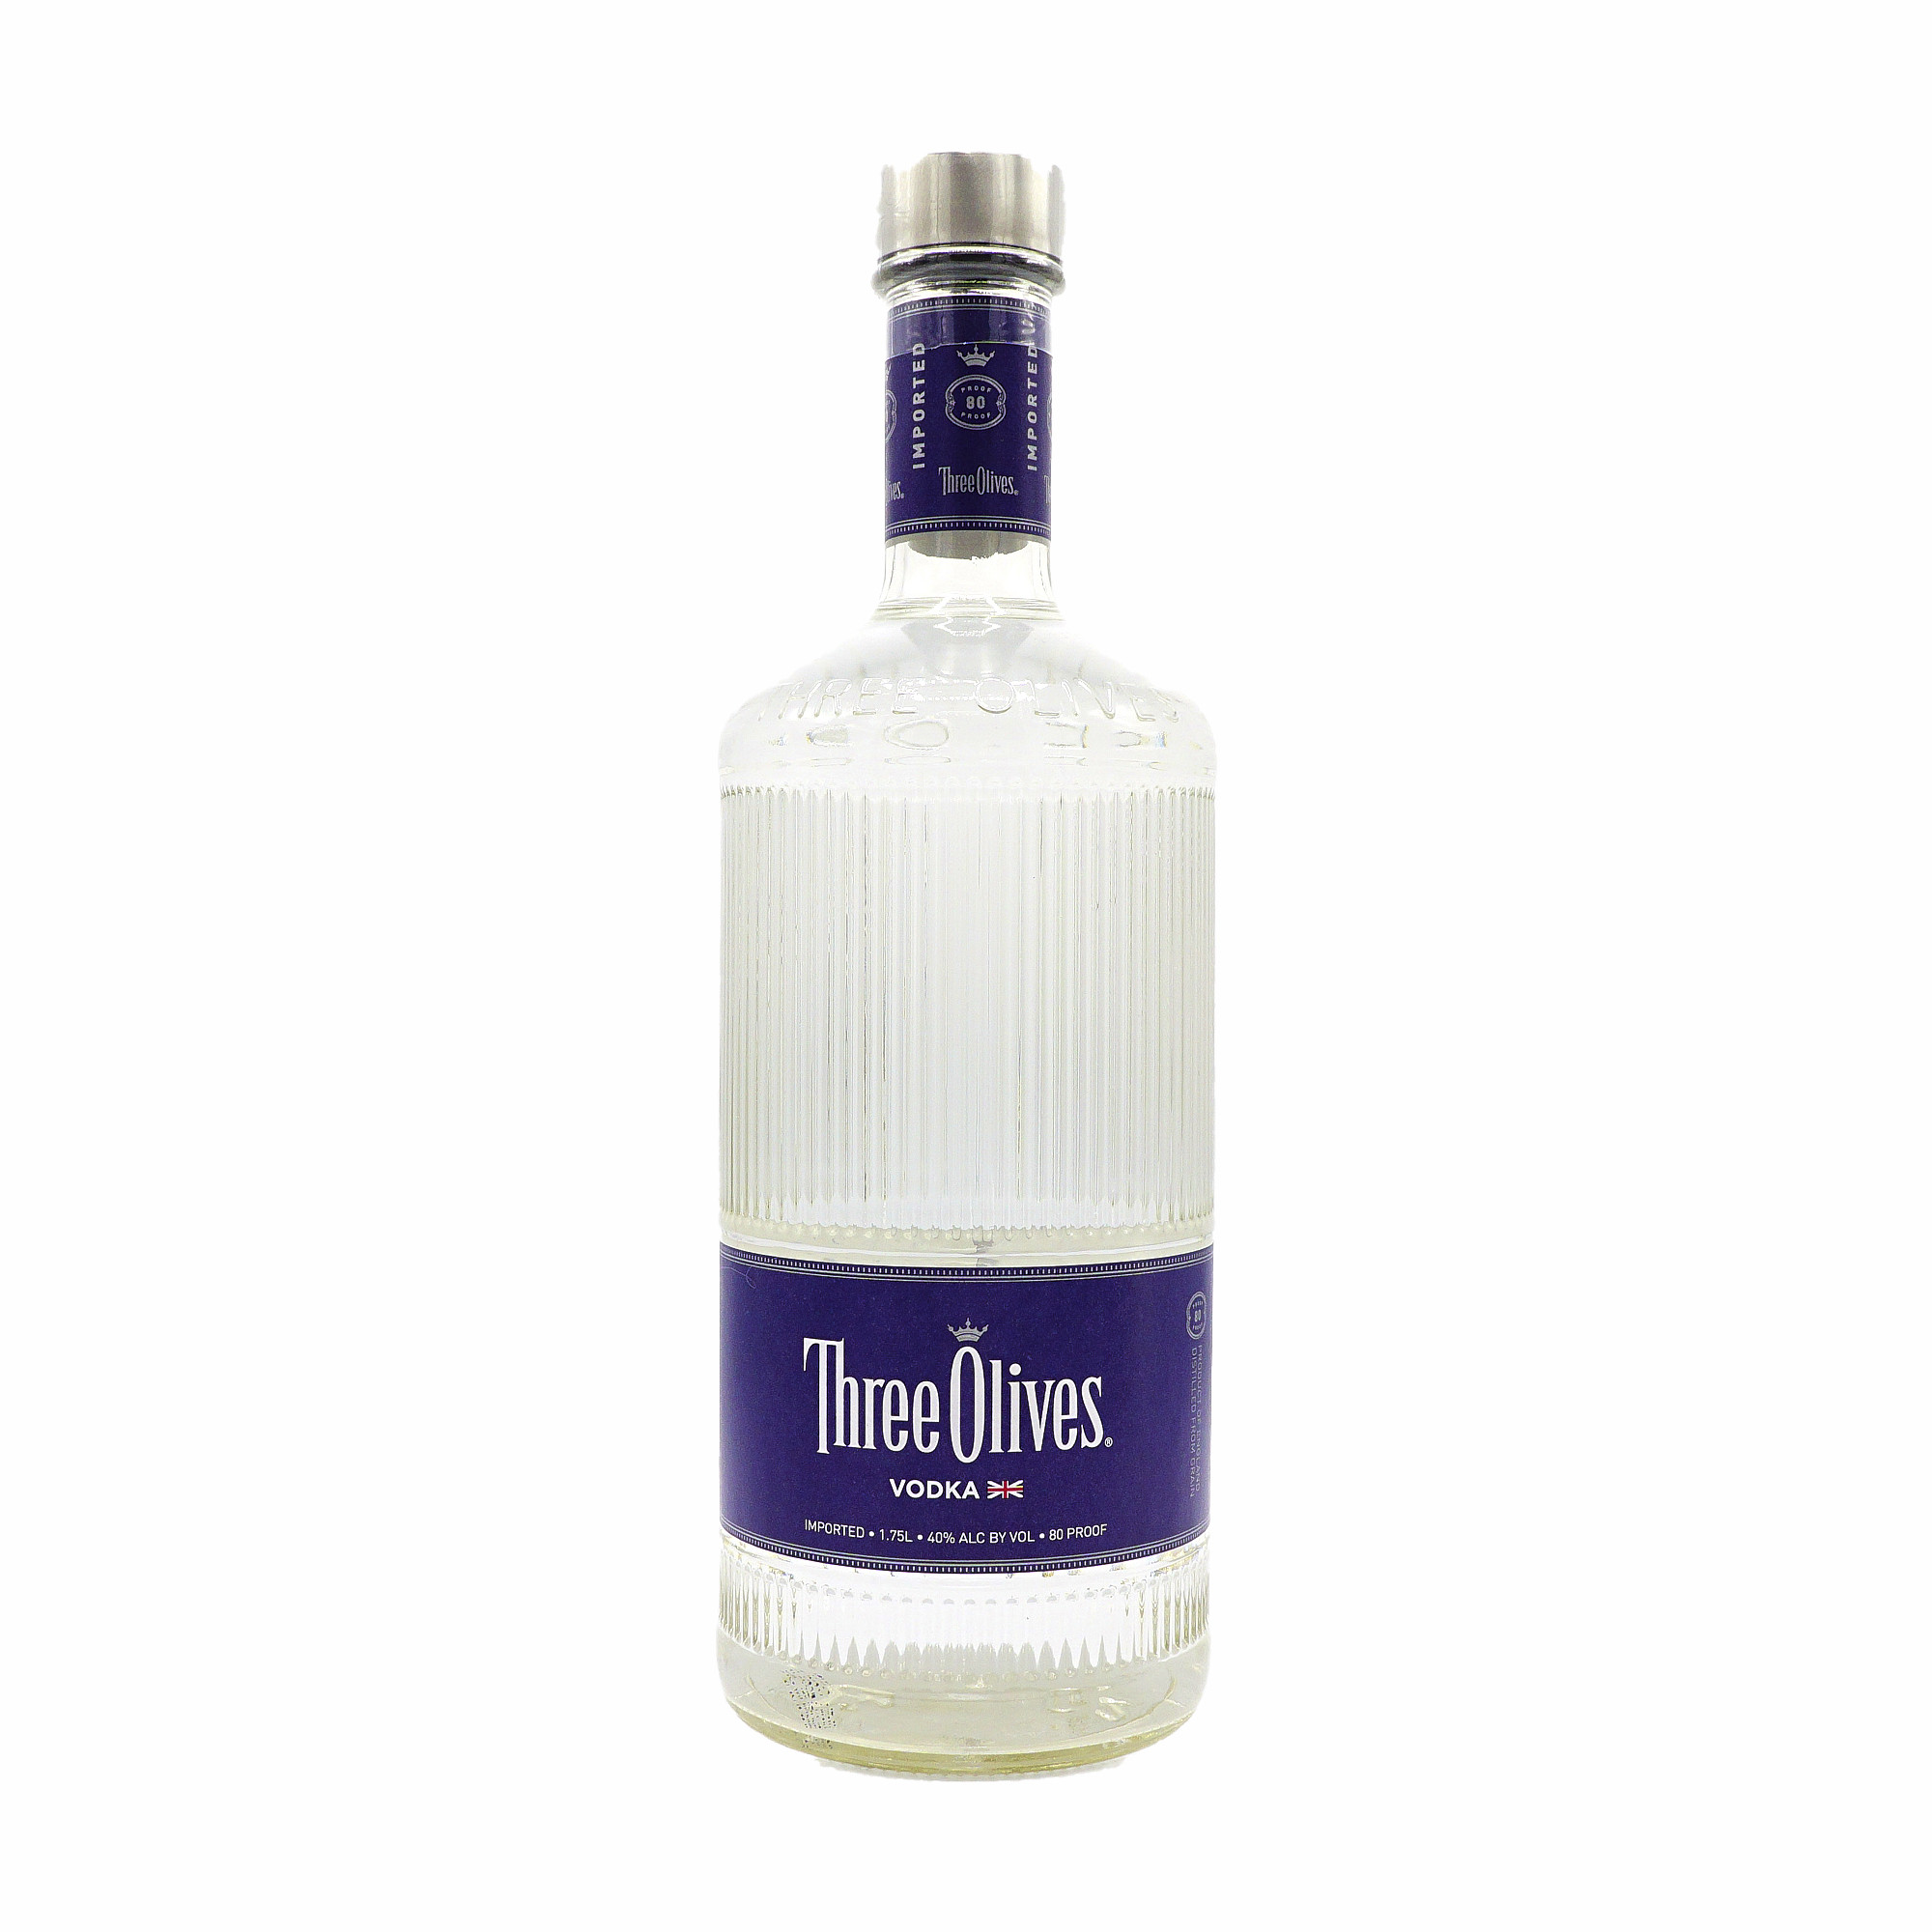 Three Olives Vodka 1.75 Ltr